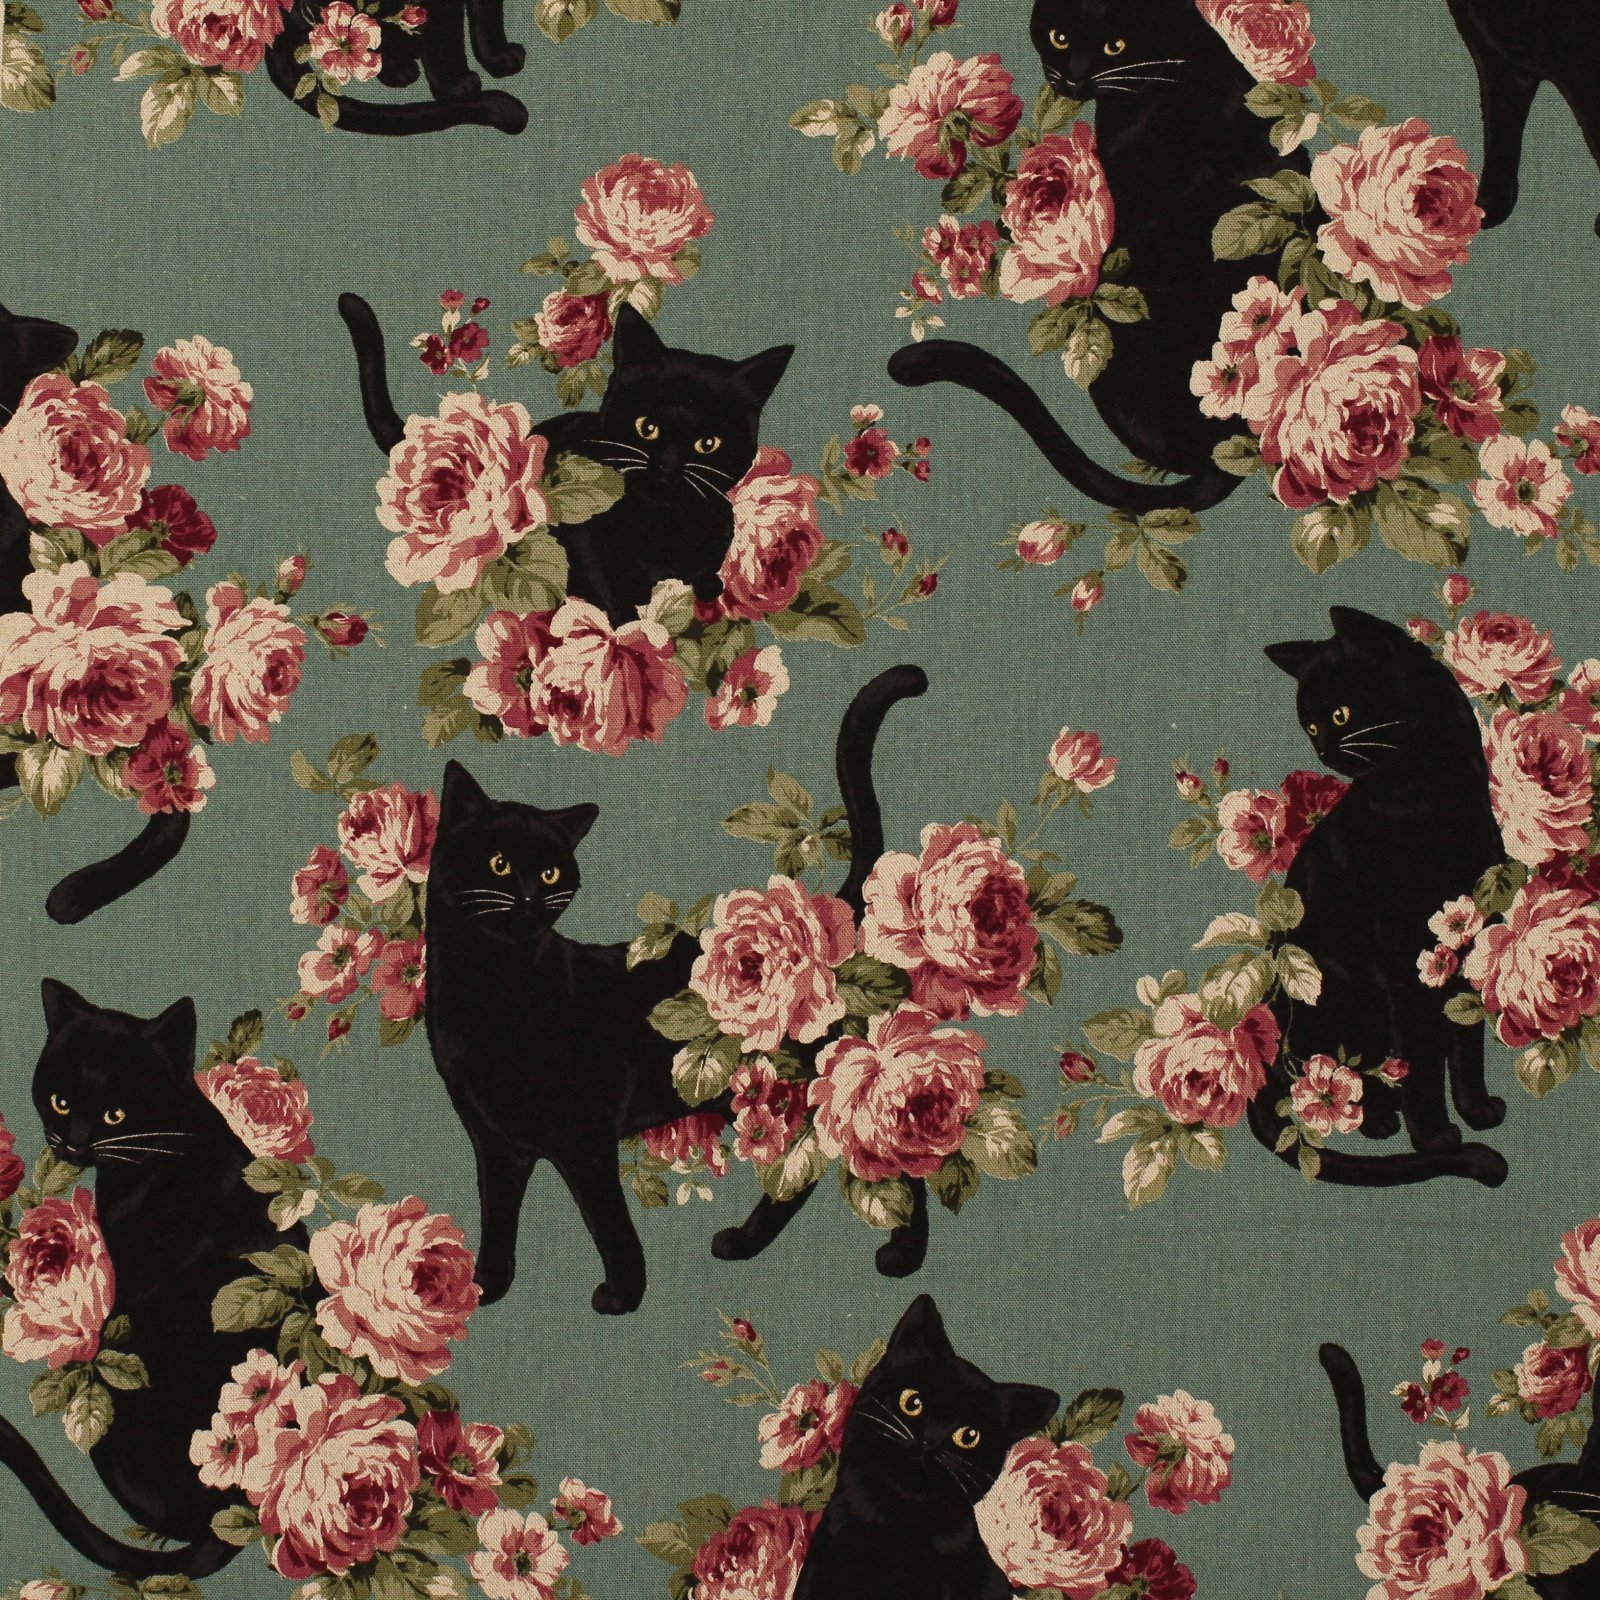 Cat with Roses on Teal - Japanese Cotton/Linen Canvas